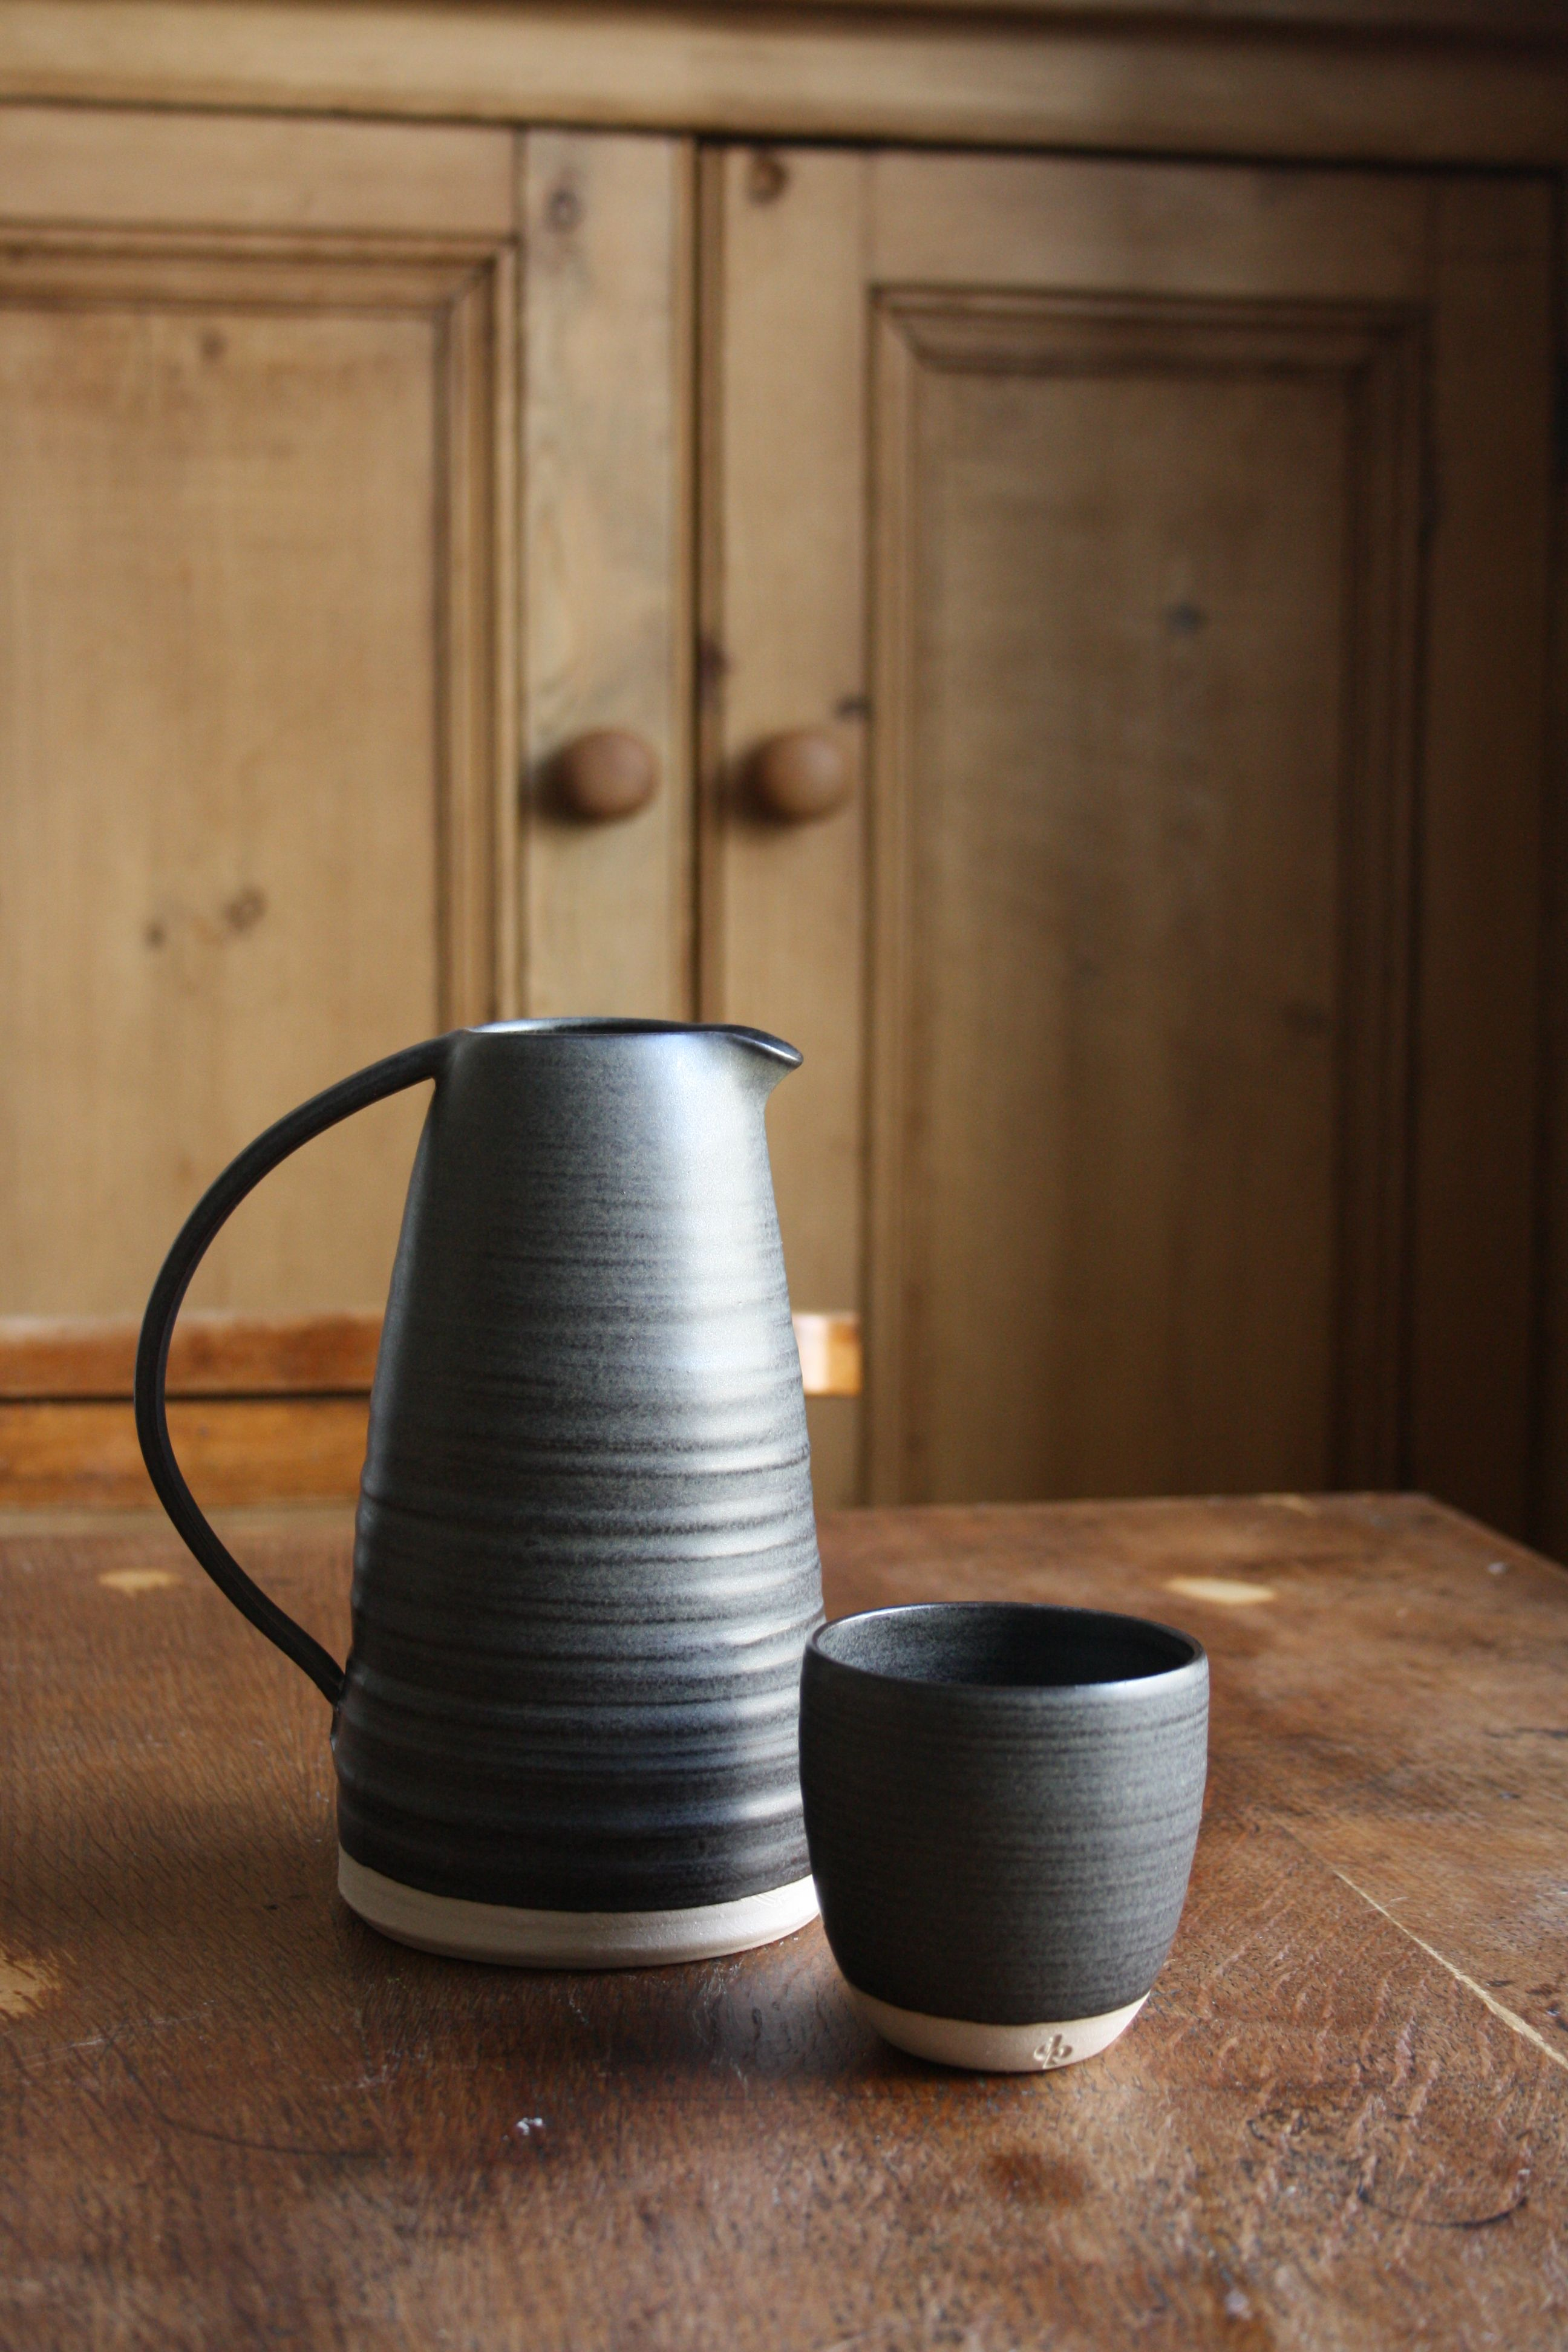 Jug and beaker by Dove Street Pottery